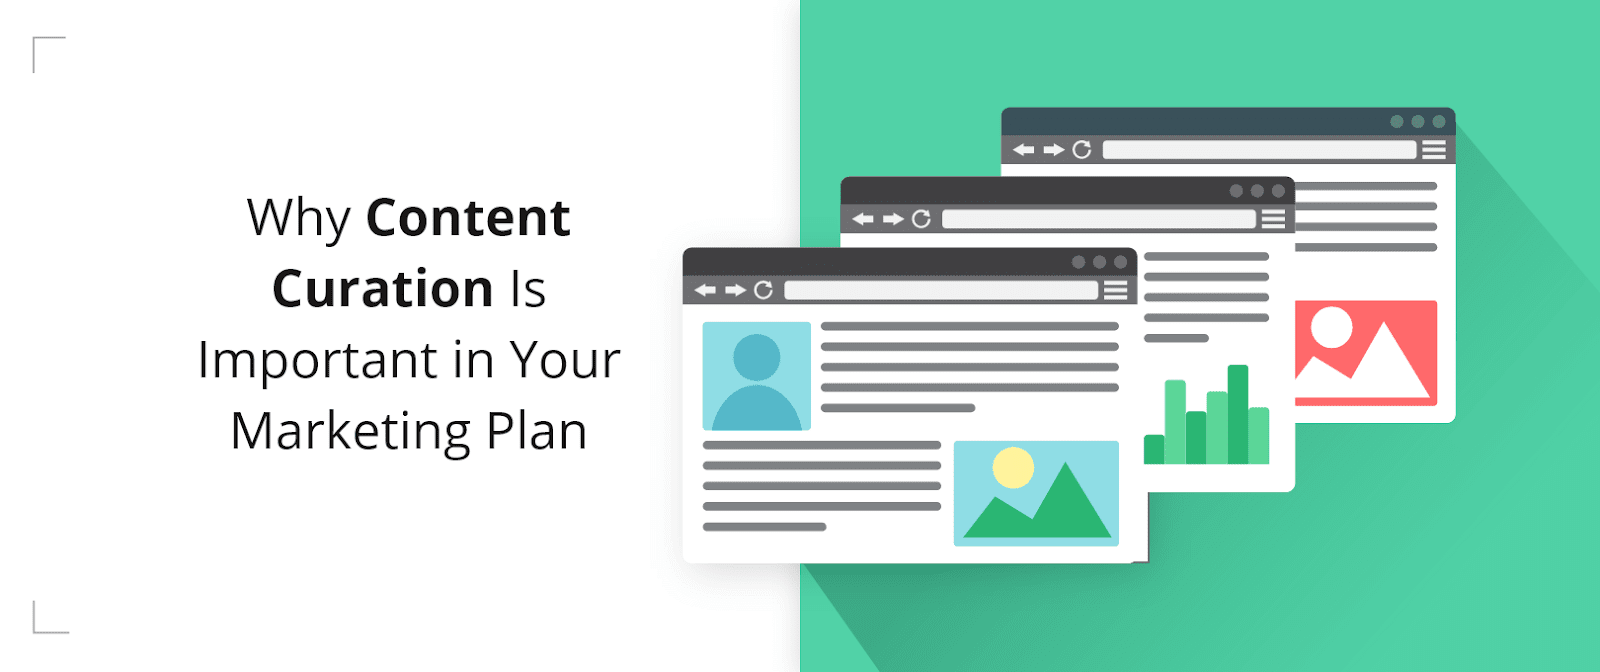 Content Curation Benefits